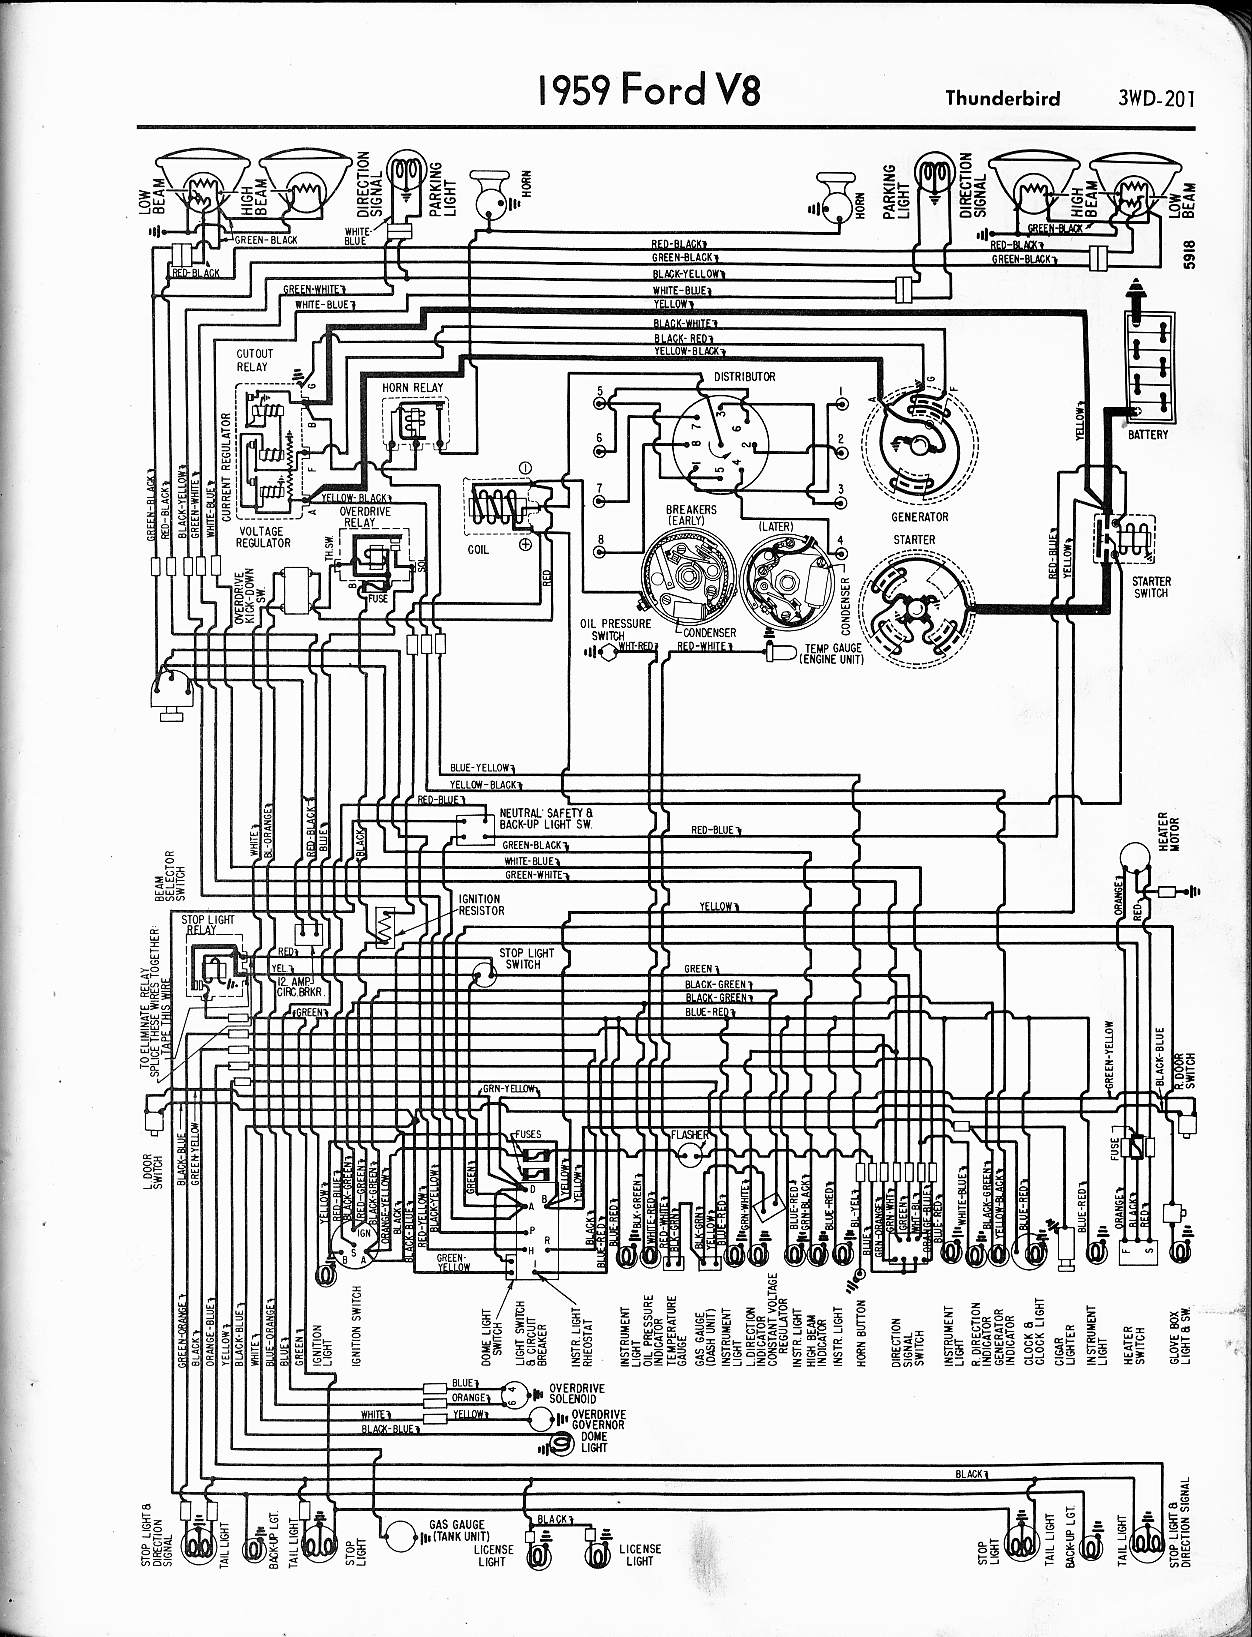 Excellent 57 65 Ford Wiring Diagrams Wiring Cloud Staixuggs Outletorg